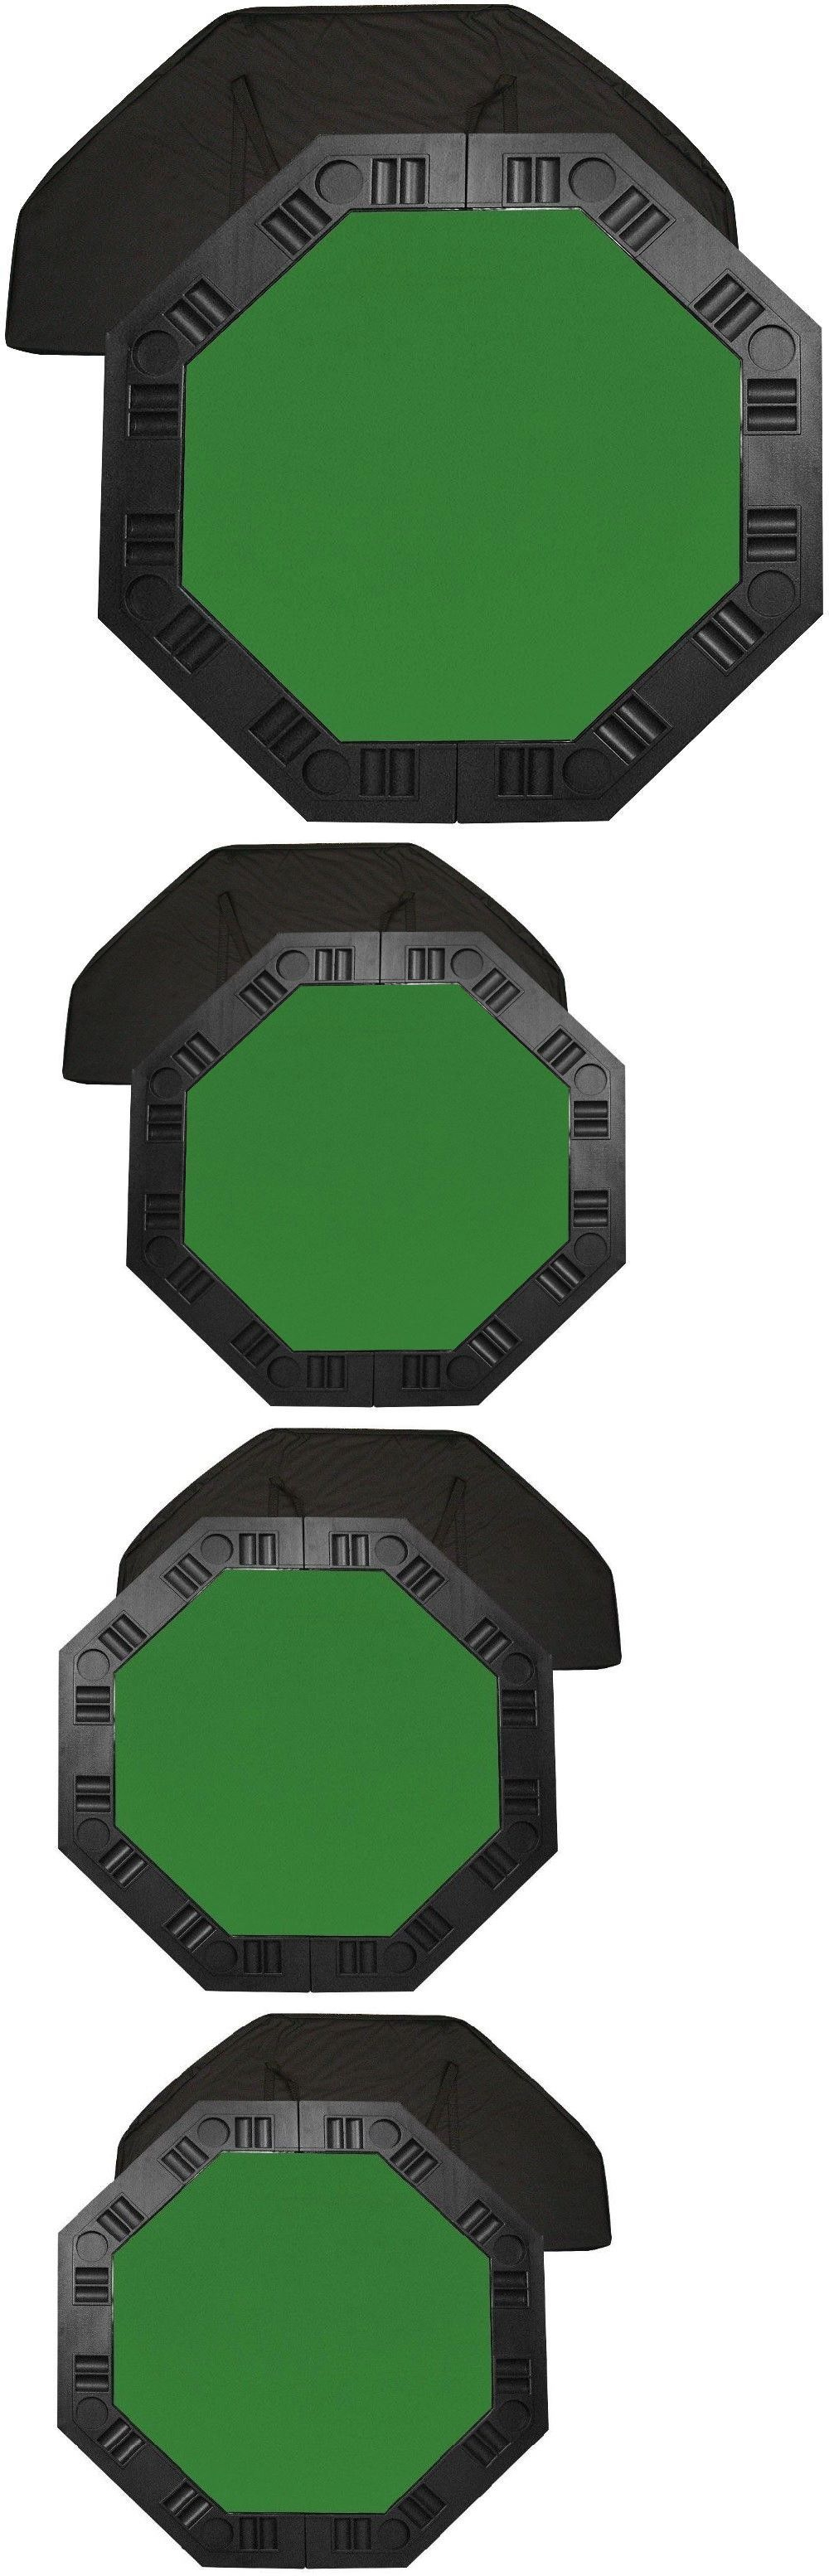 Card Tables And Tabletops 166572: Poker Table Top Portable Octagon 48 In.  Green Felt